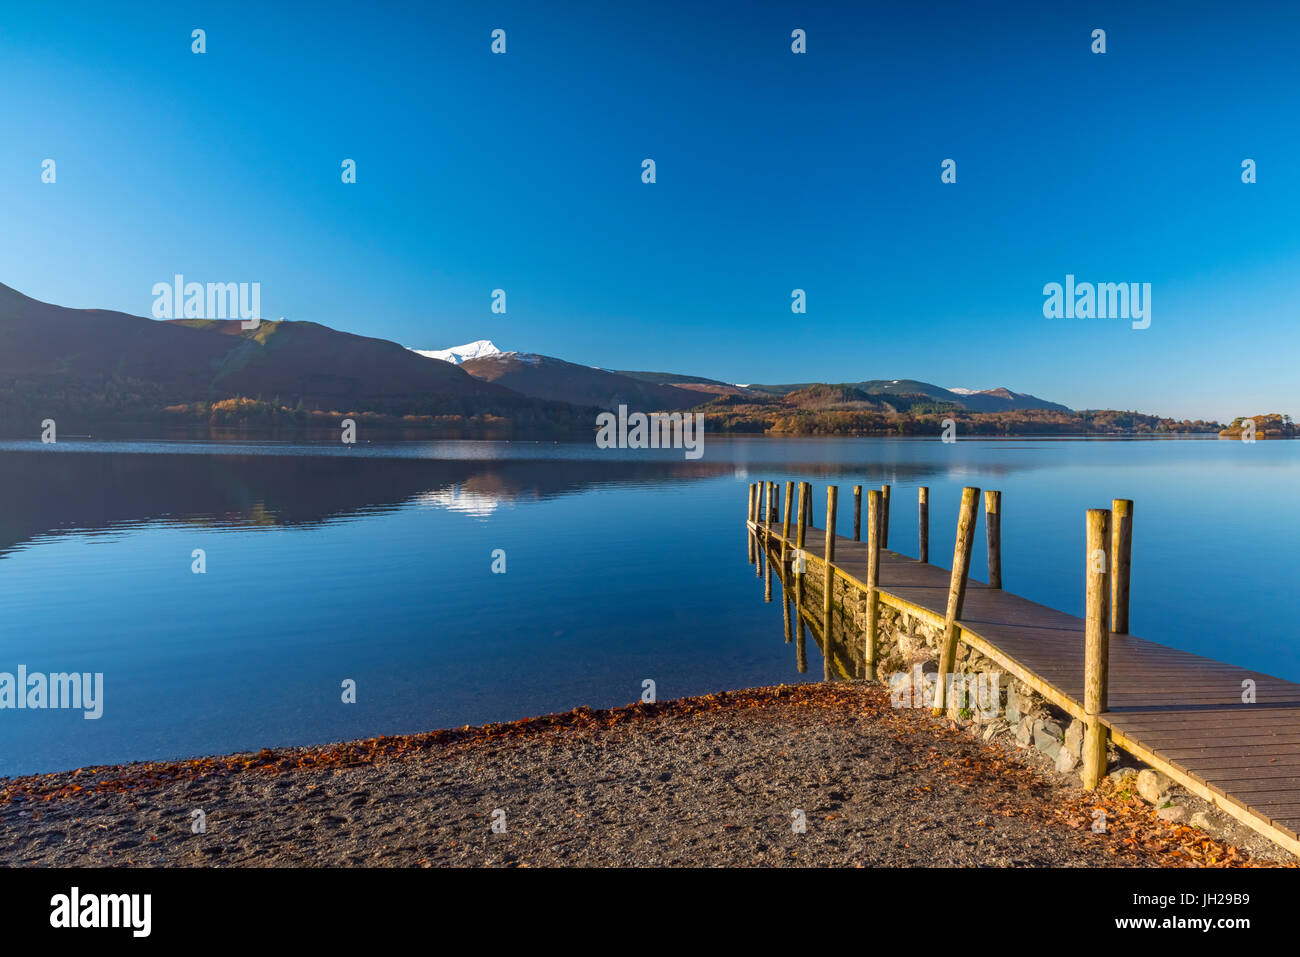 Ashness Jetty, Derwentwater, Keswick, Lake District National Park, Cumbria, England, United Kingdom, Europe - Stock Image